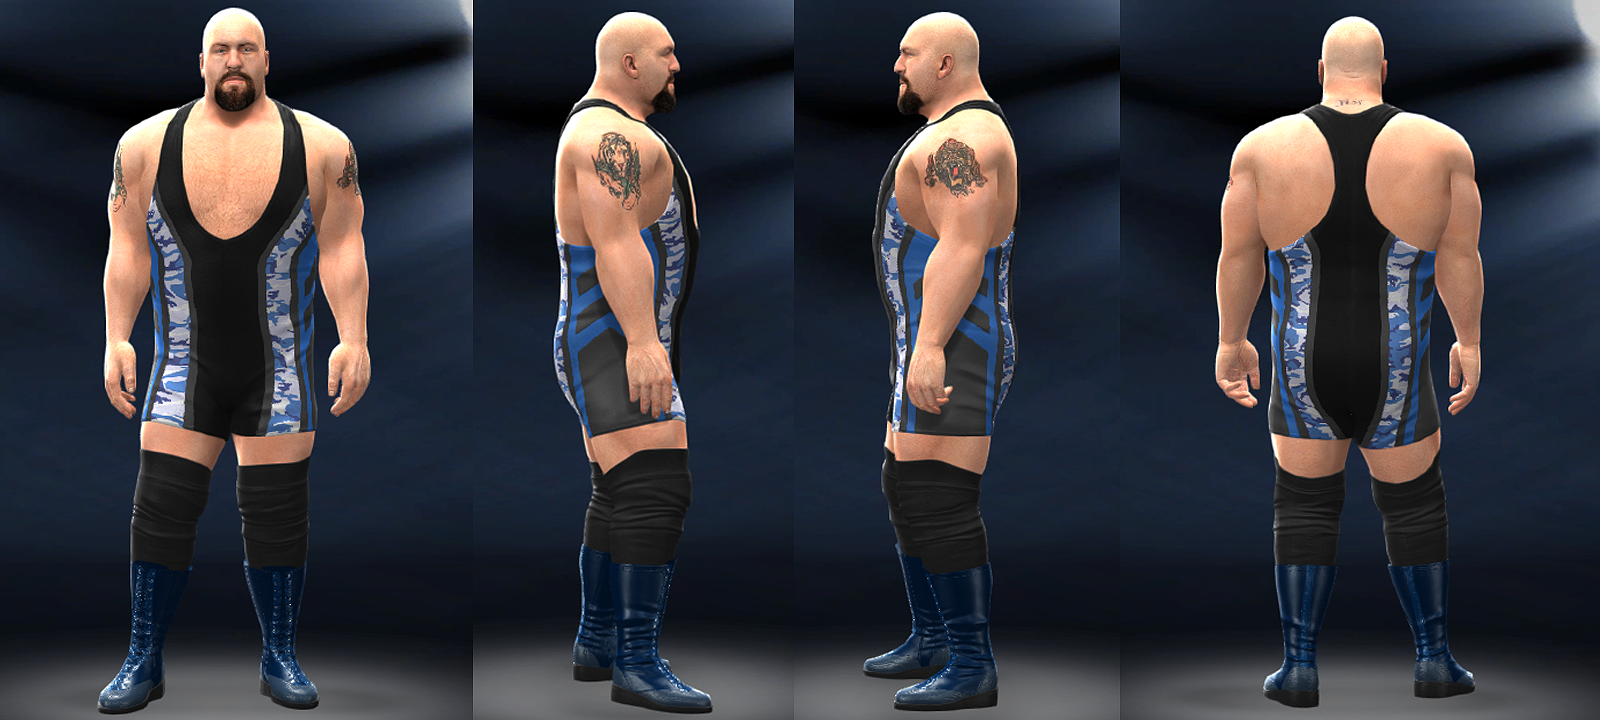 15bigshow.png